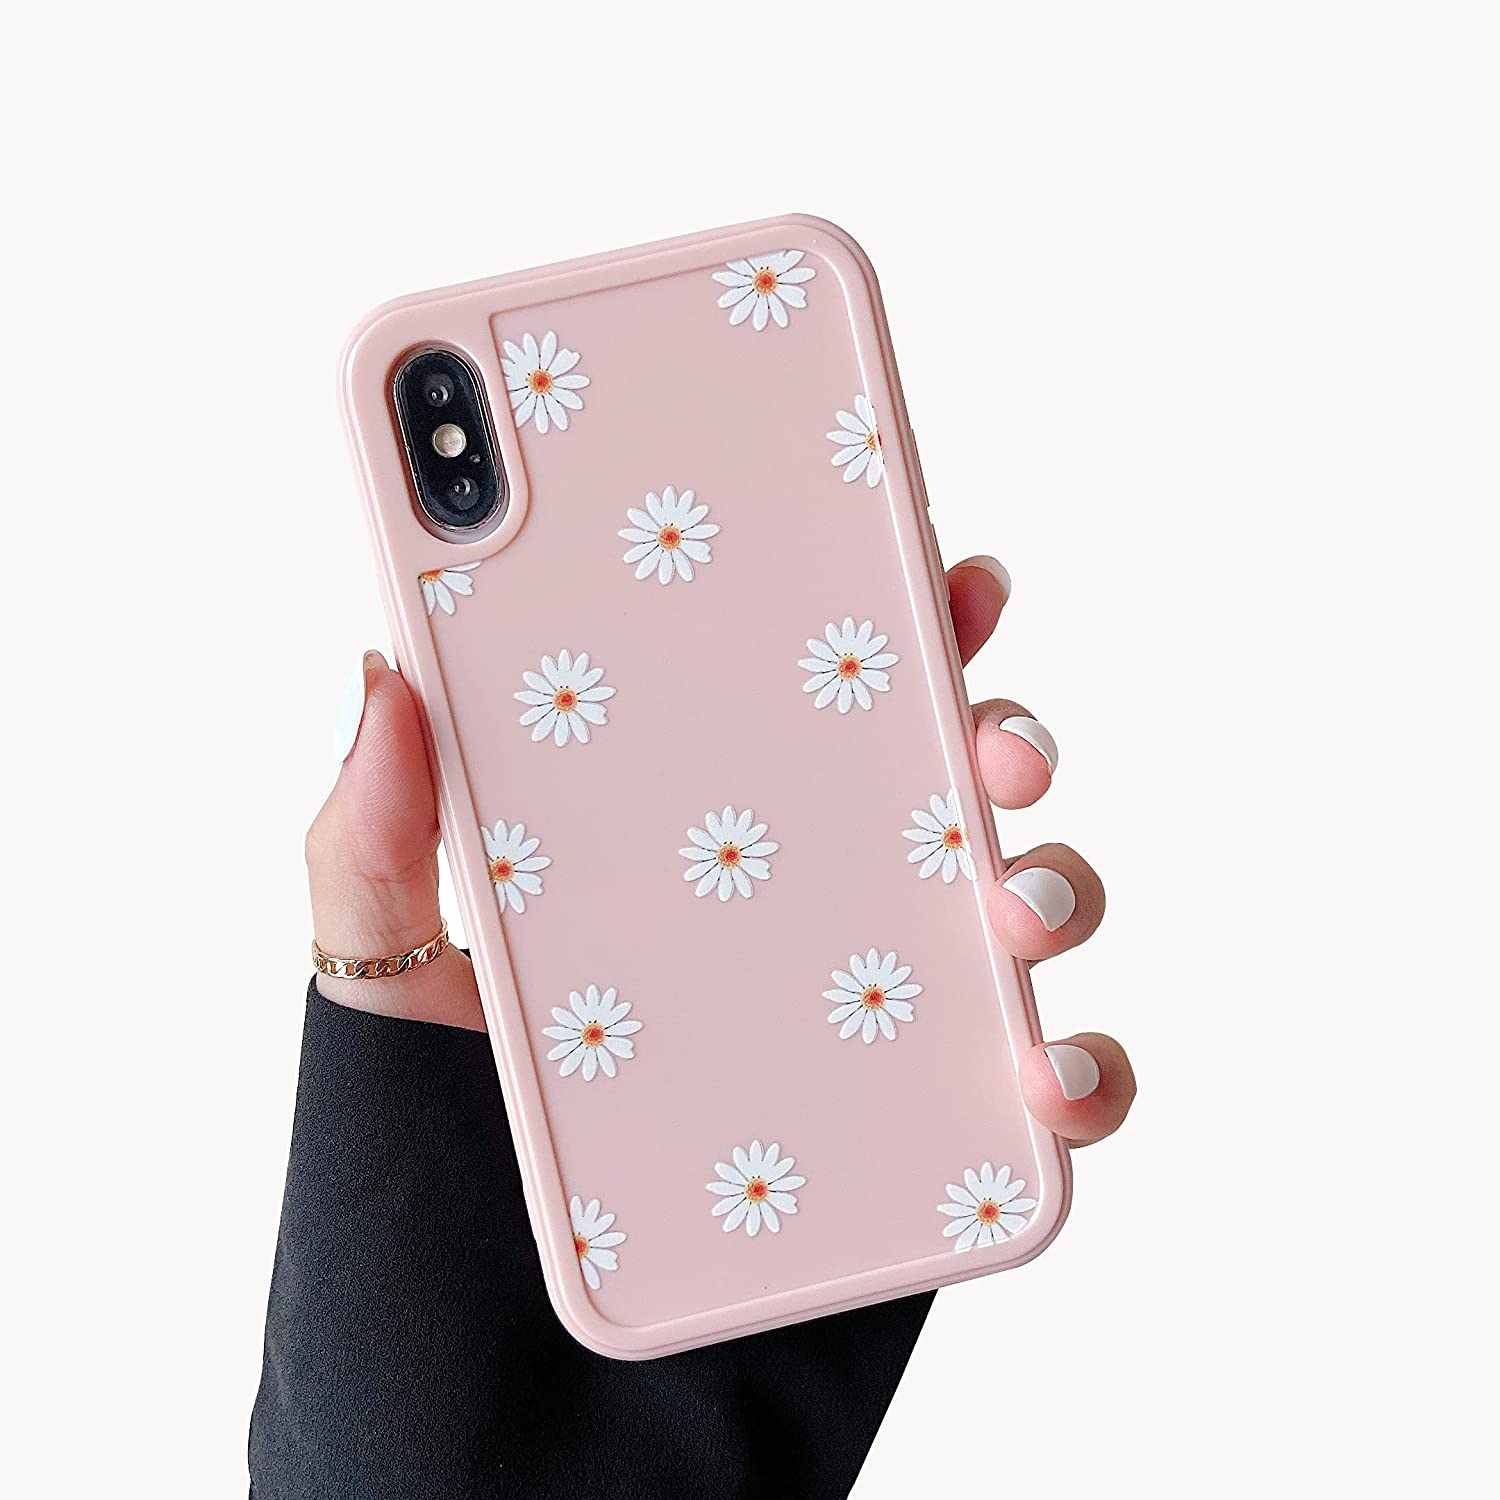 ZTOFERA TPU Back Case for iPhone X/iPhone Xs, Daisy Pattern Glossy Soft Silicone Case, Cute Girls Case Slim Lightweight Protective Bumper Cover for iPhone X/iPhone Xs - Pink